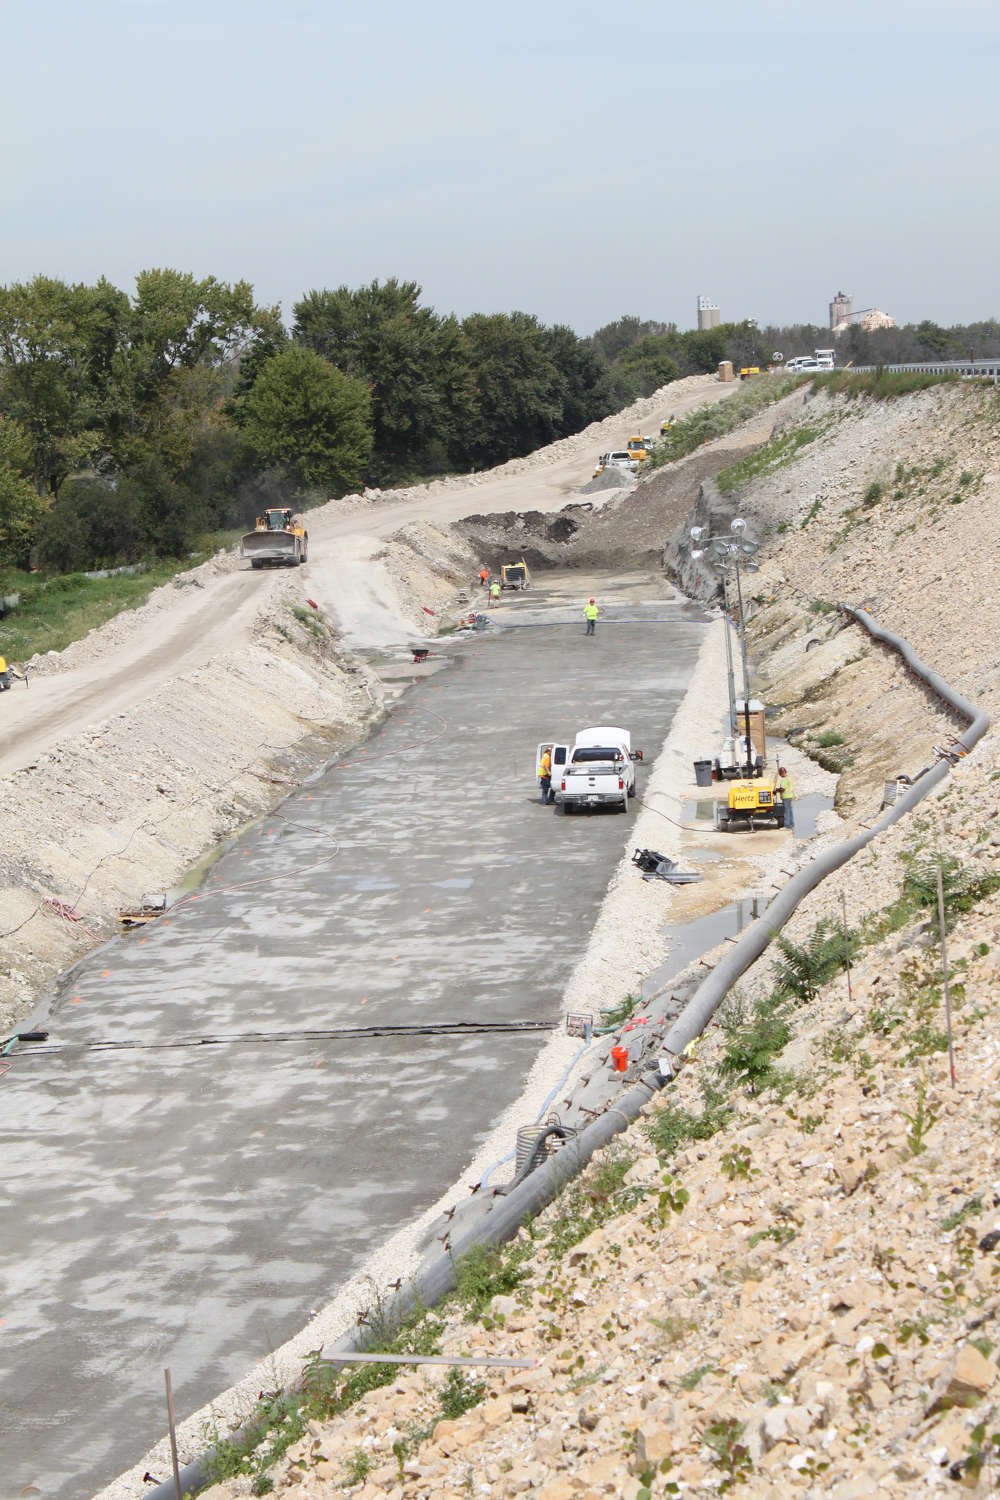 The U.S. Army Corps of Engineers (USACE) $150 million Lockport Lock and Dam, Upper Pool project is nearing completion as crews from ASI Constructors Inc. are working hard to deliver the final phase of the project.